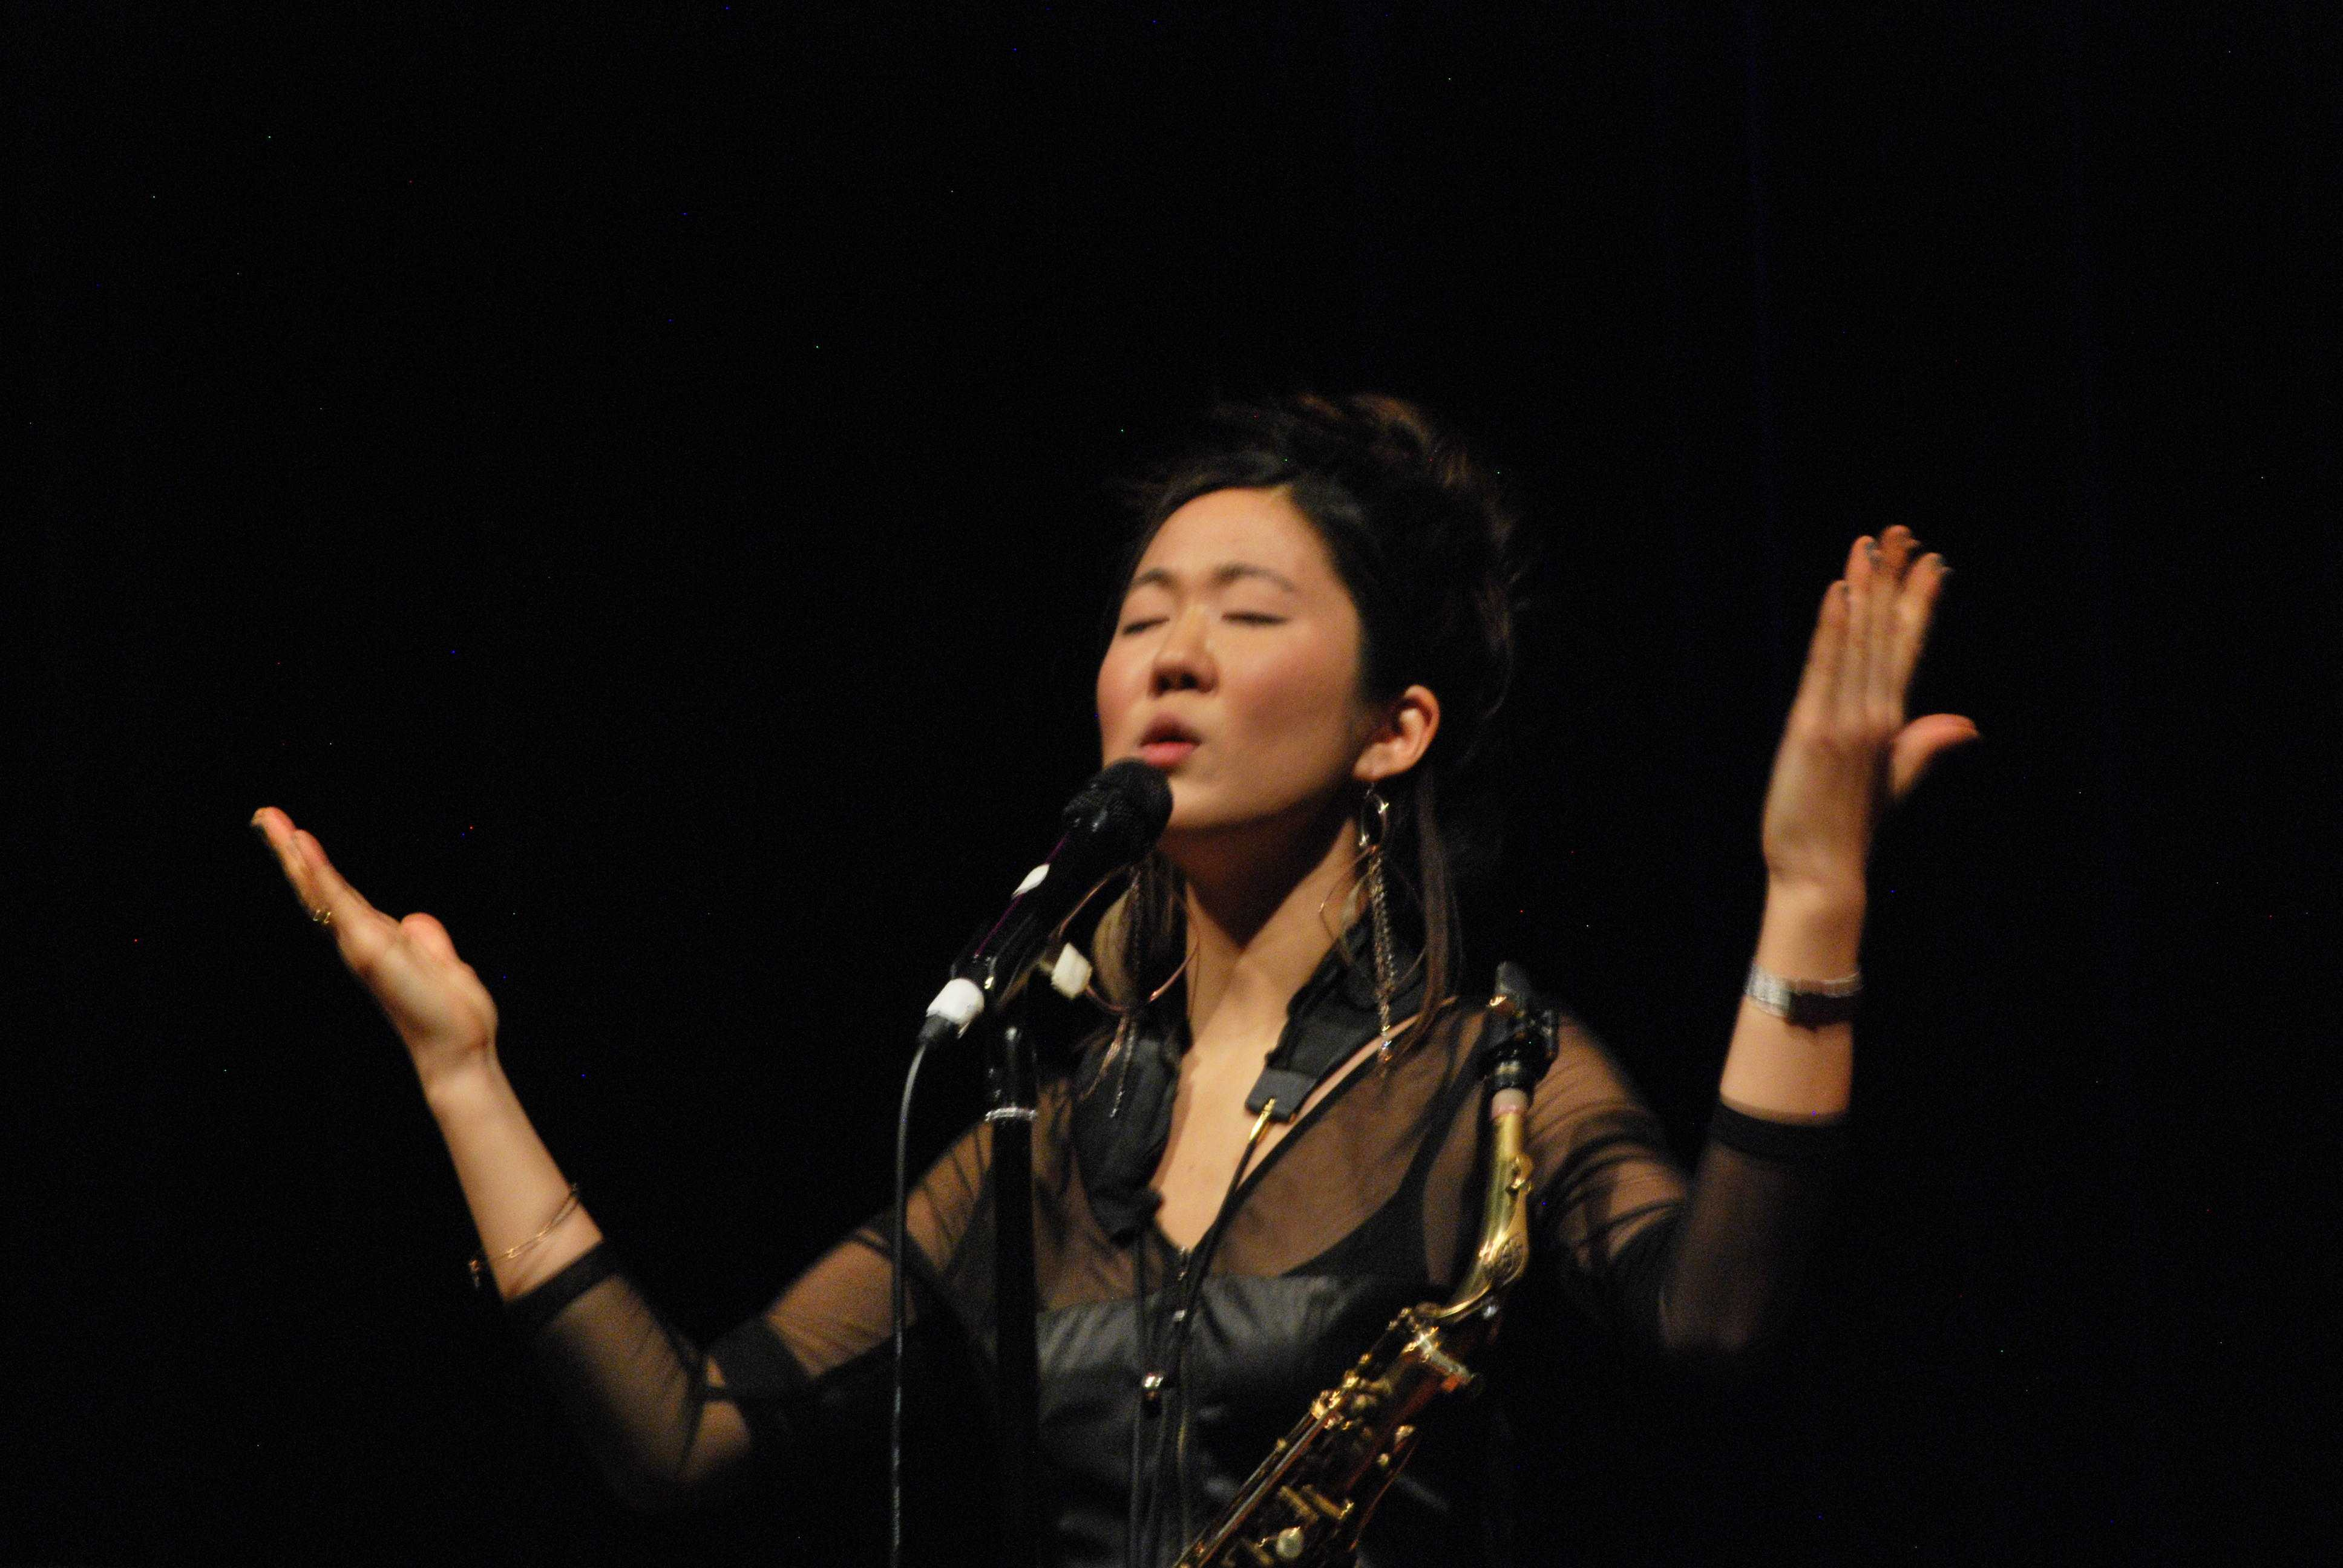 Grace Kelly performs at the Stem Concert Hall on Jan. 15